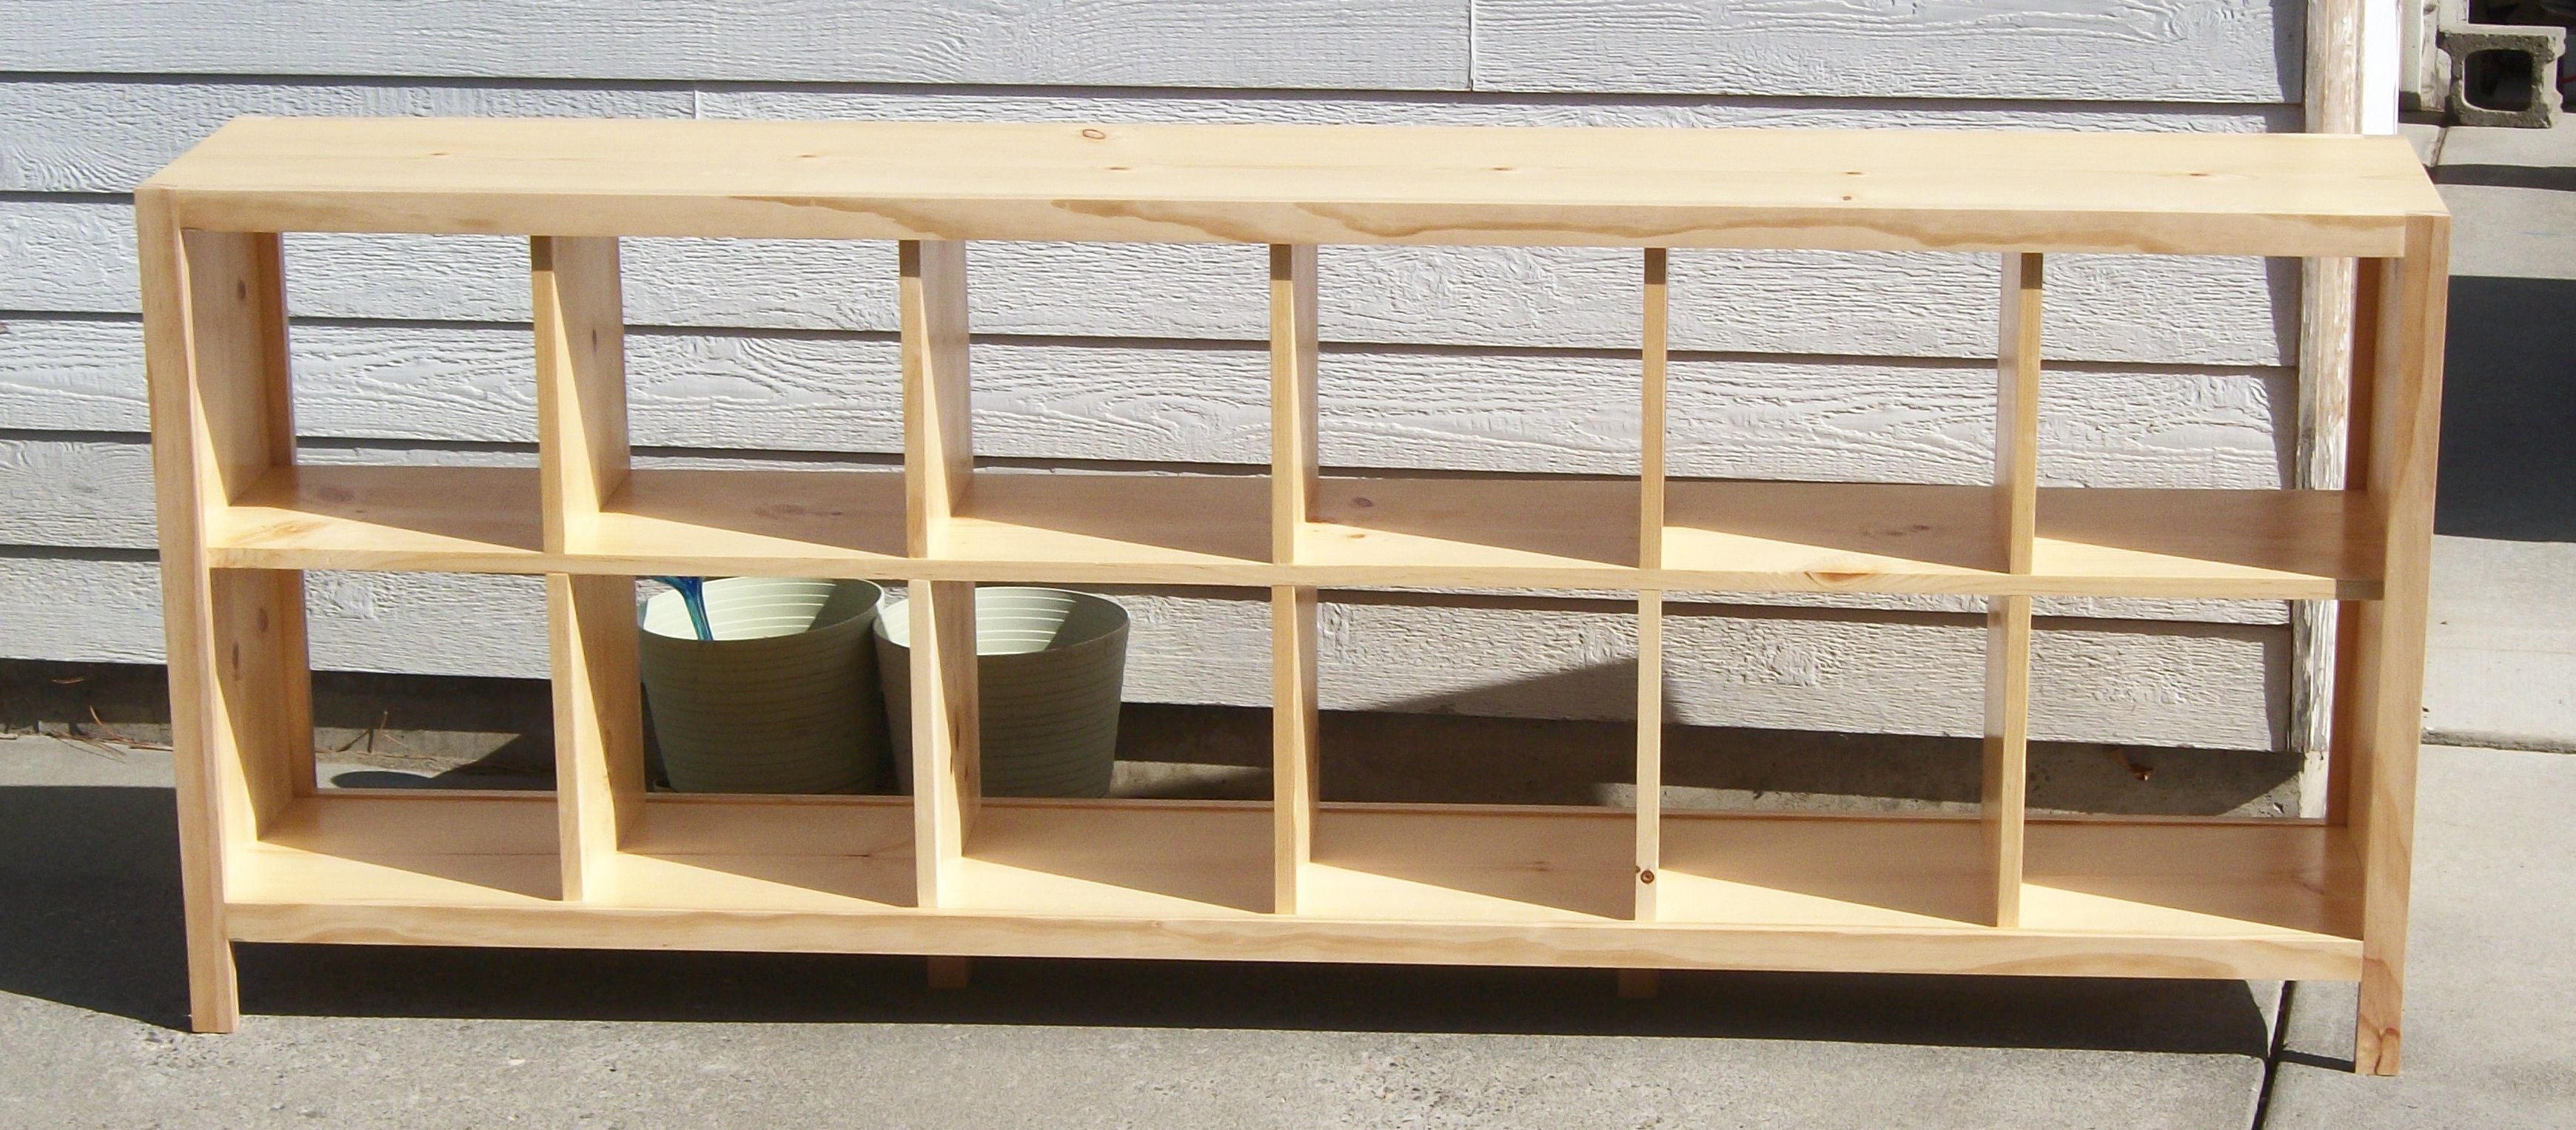 easy cube bookcase plans built this for a friend of mine